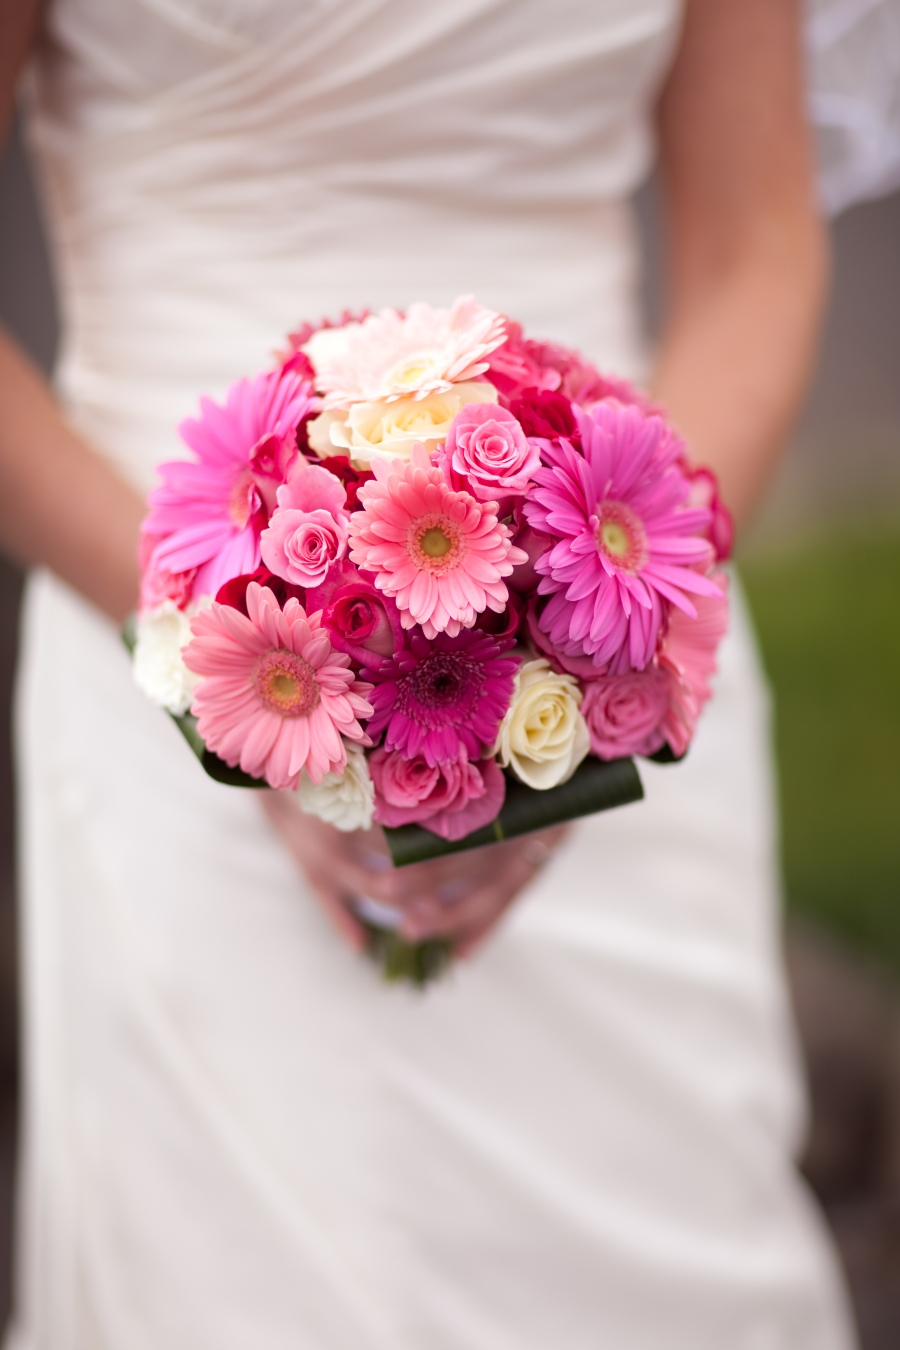 35 beach wedding bouquets destination wedding details beach wedding bouquet pink gerbeera daisies and roses junglespirit